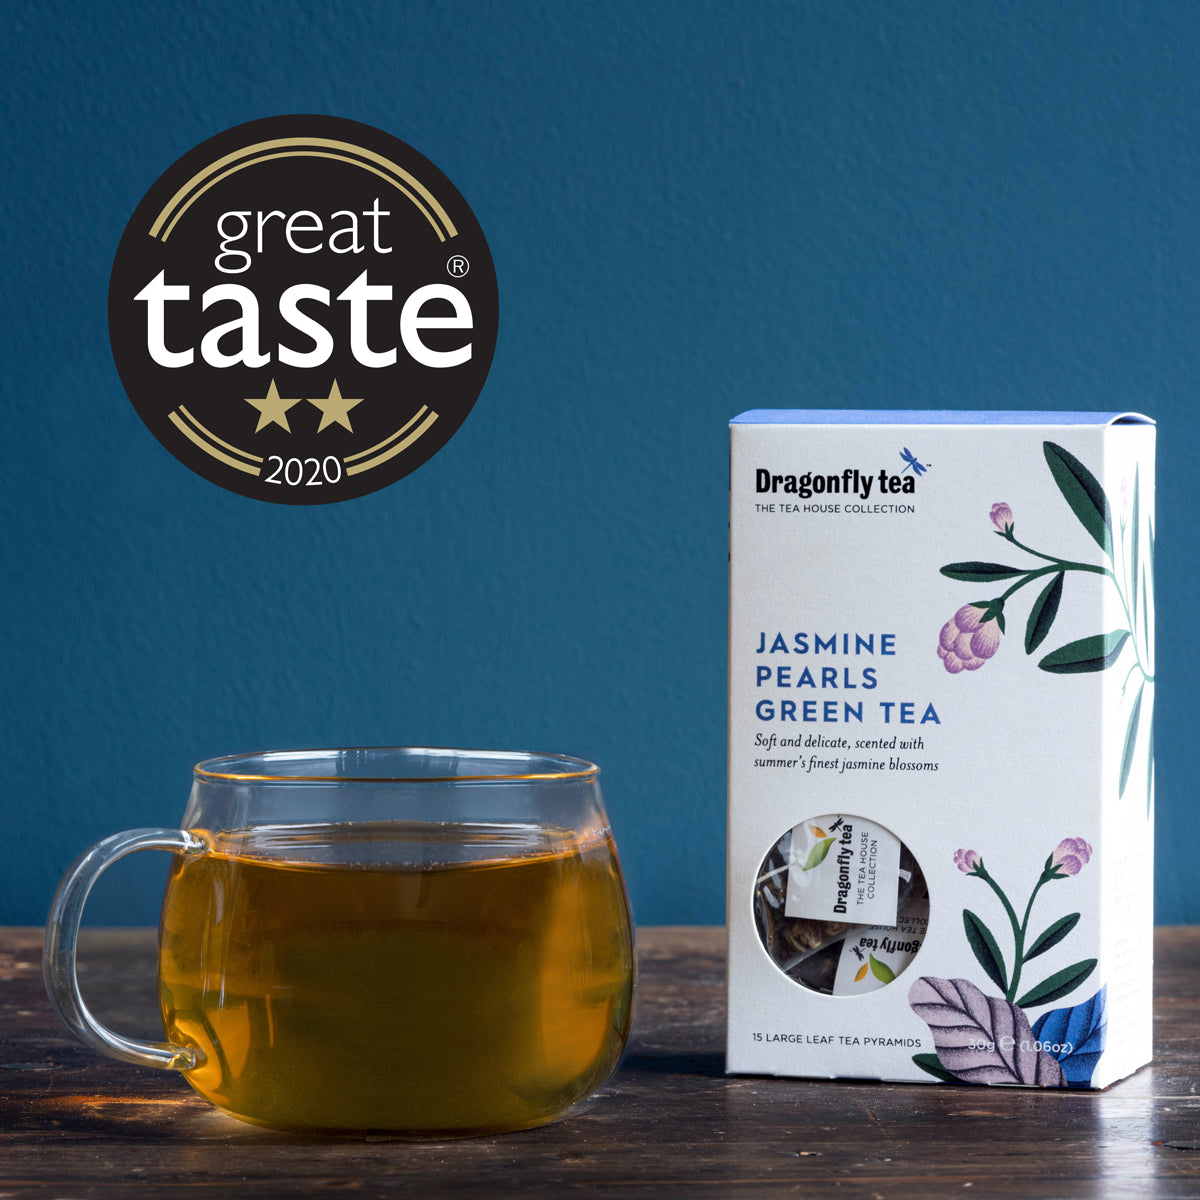 Dragonfly Tea wins Great Taste Awards!